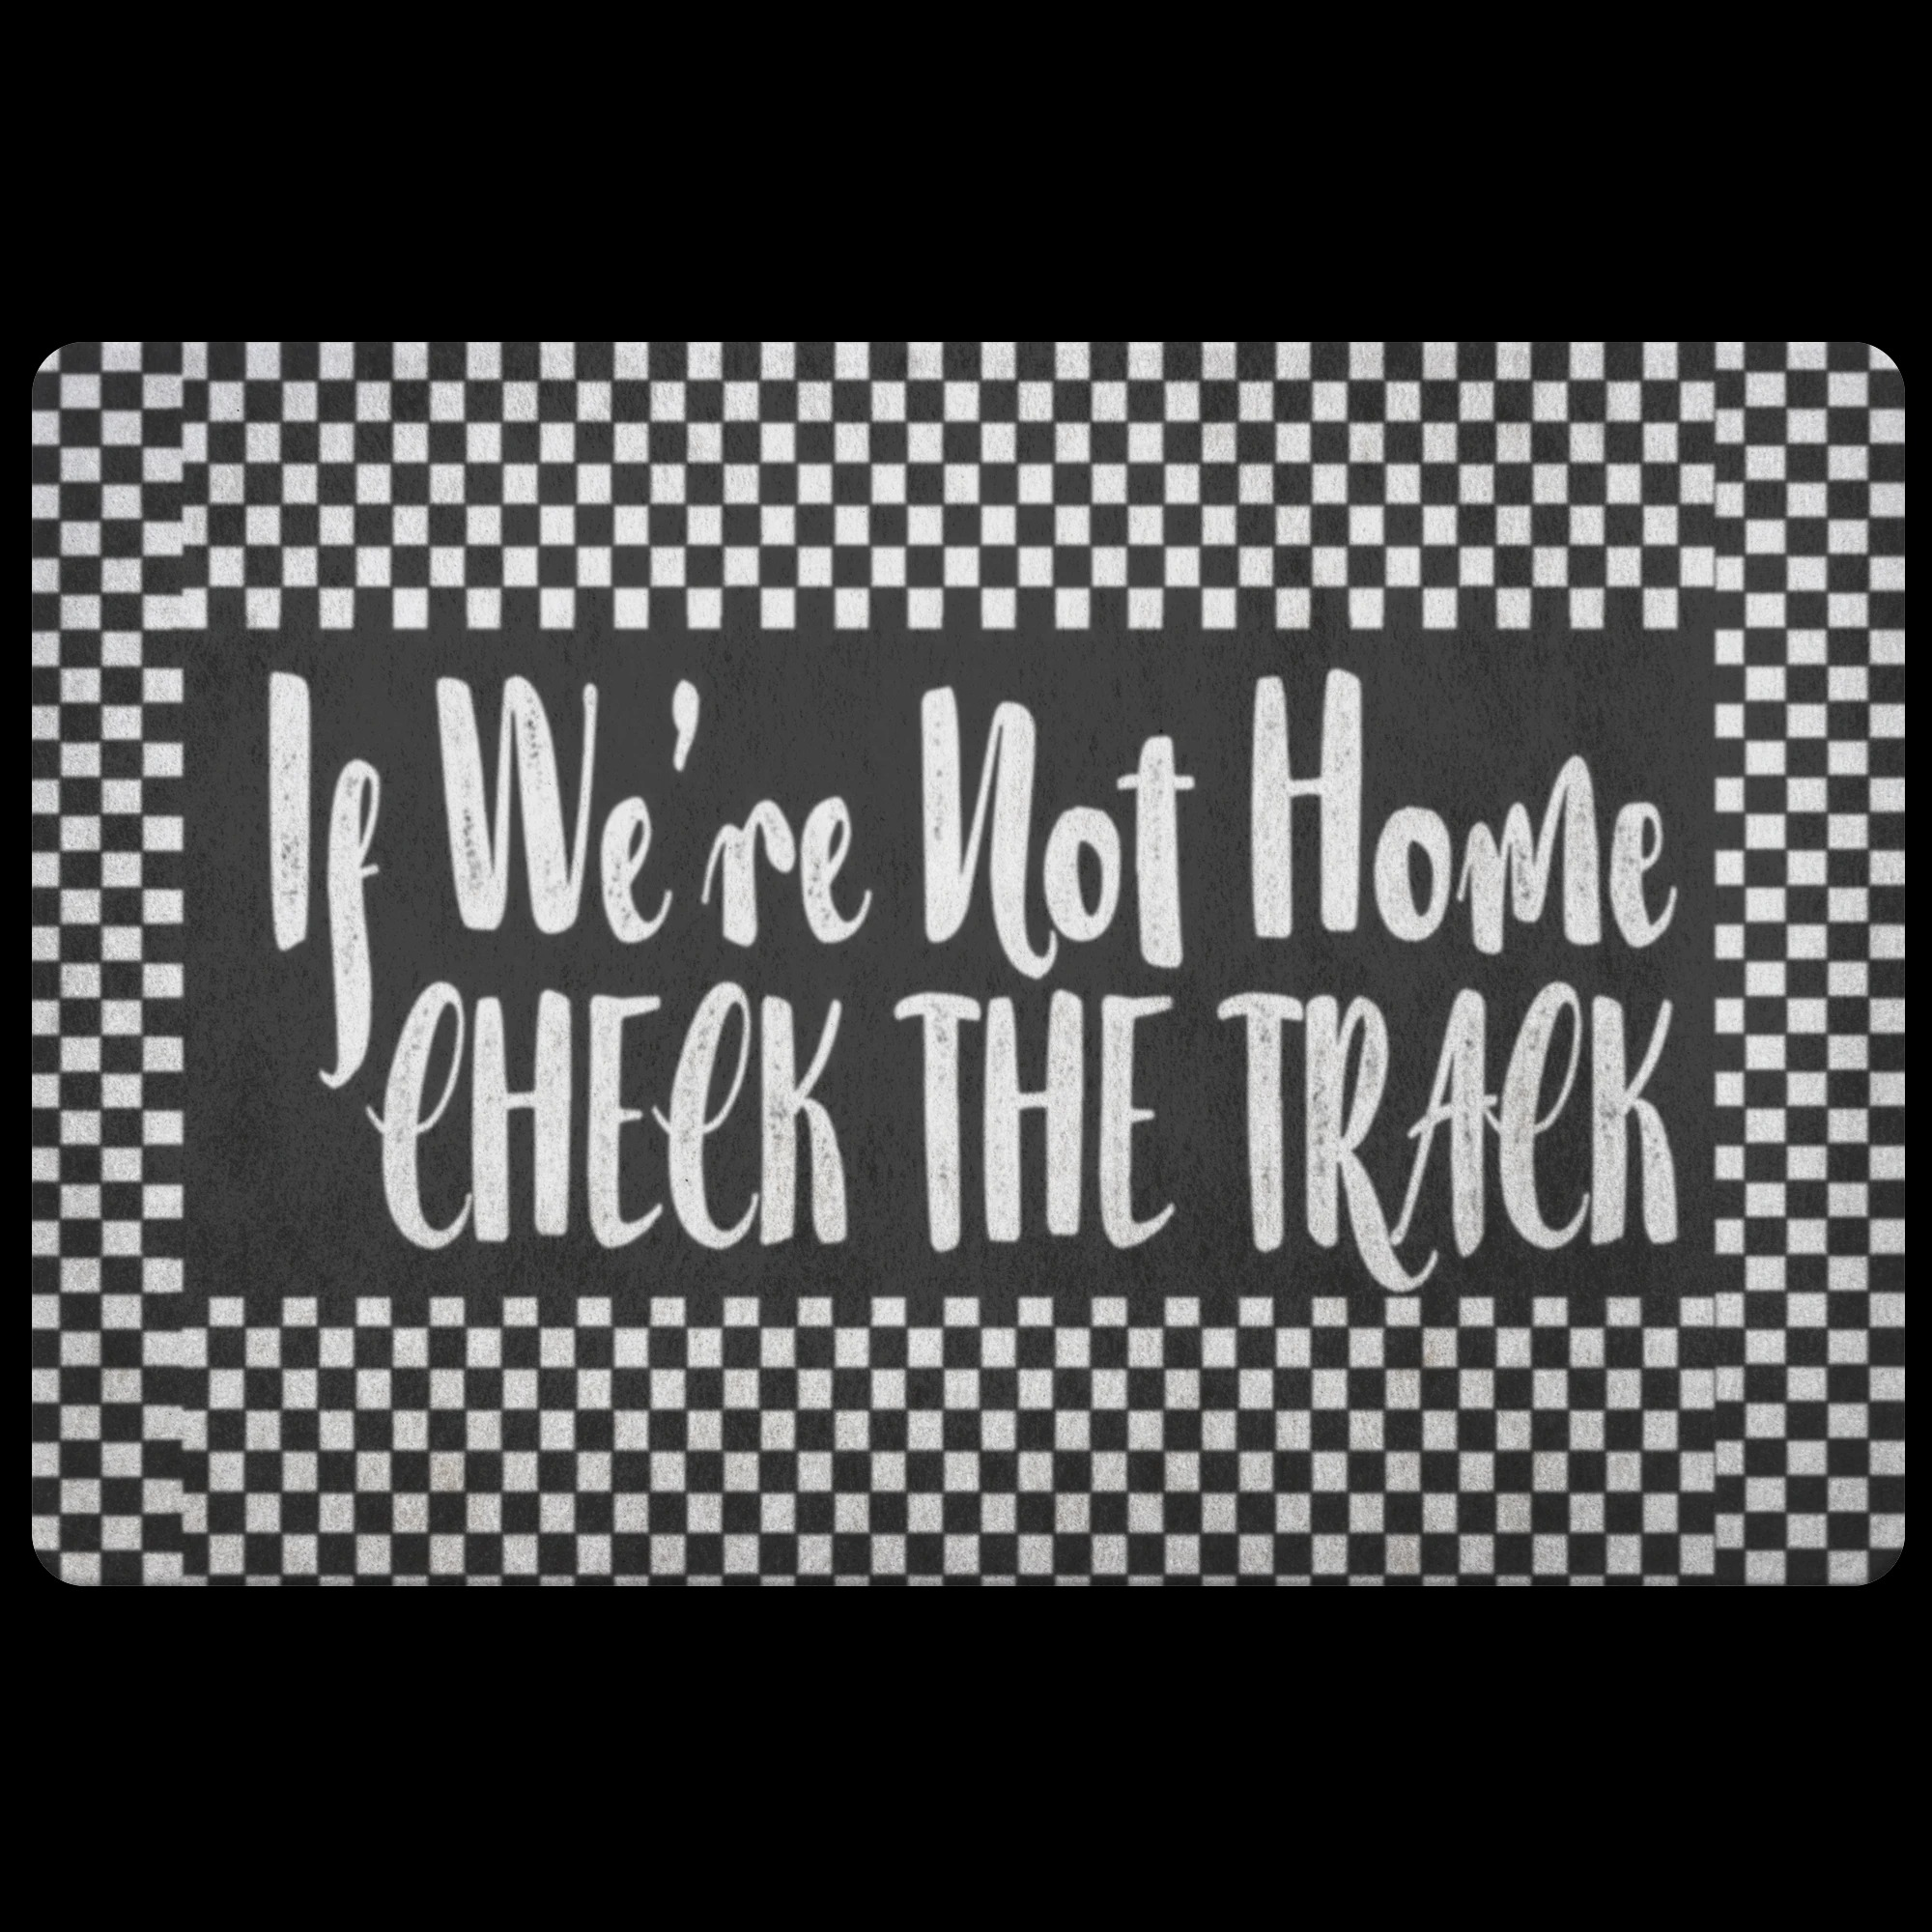 If we're not home check the track racing doormat 1